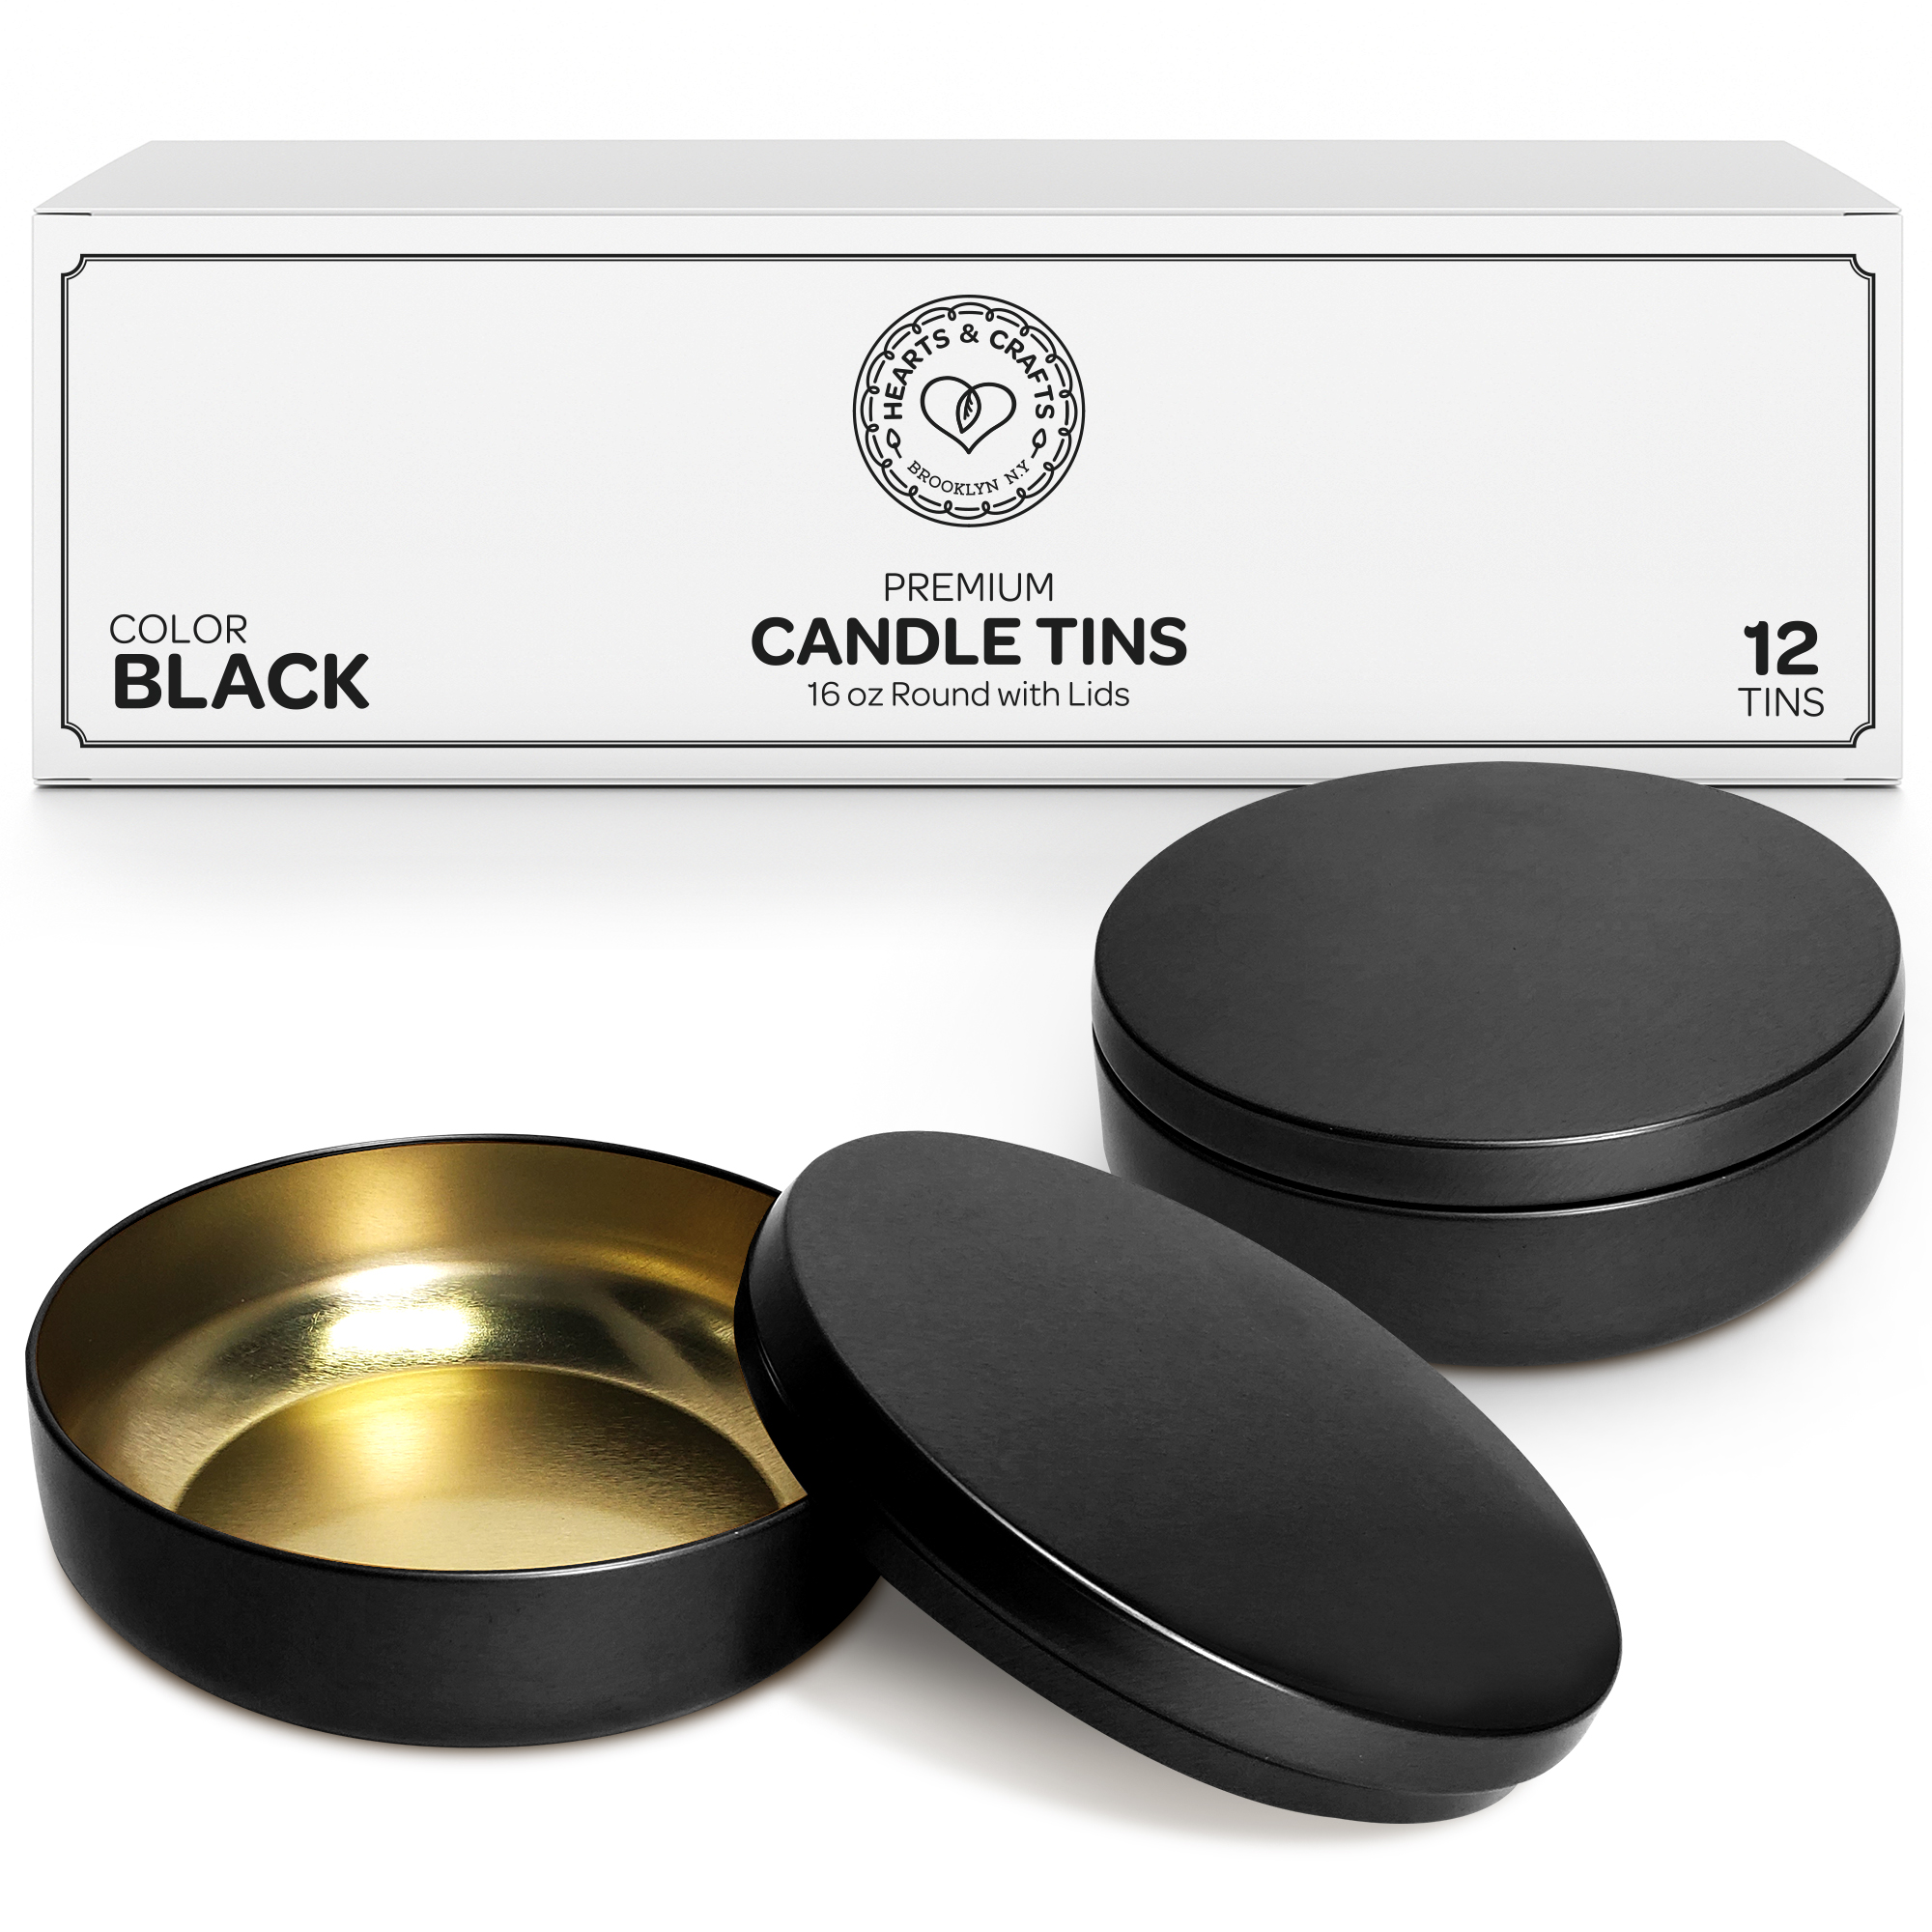 16oz Black Candle Tins – 12 Count